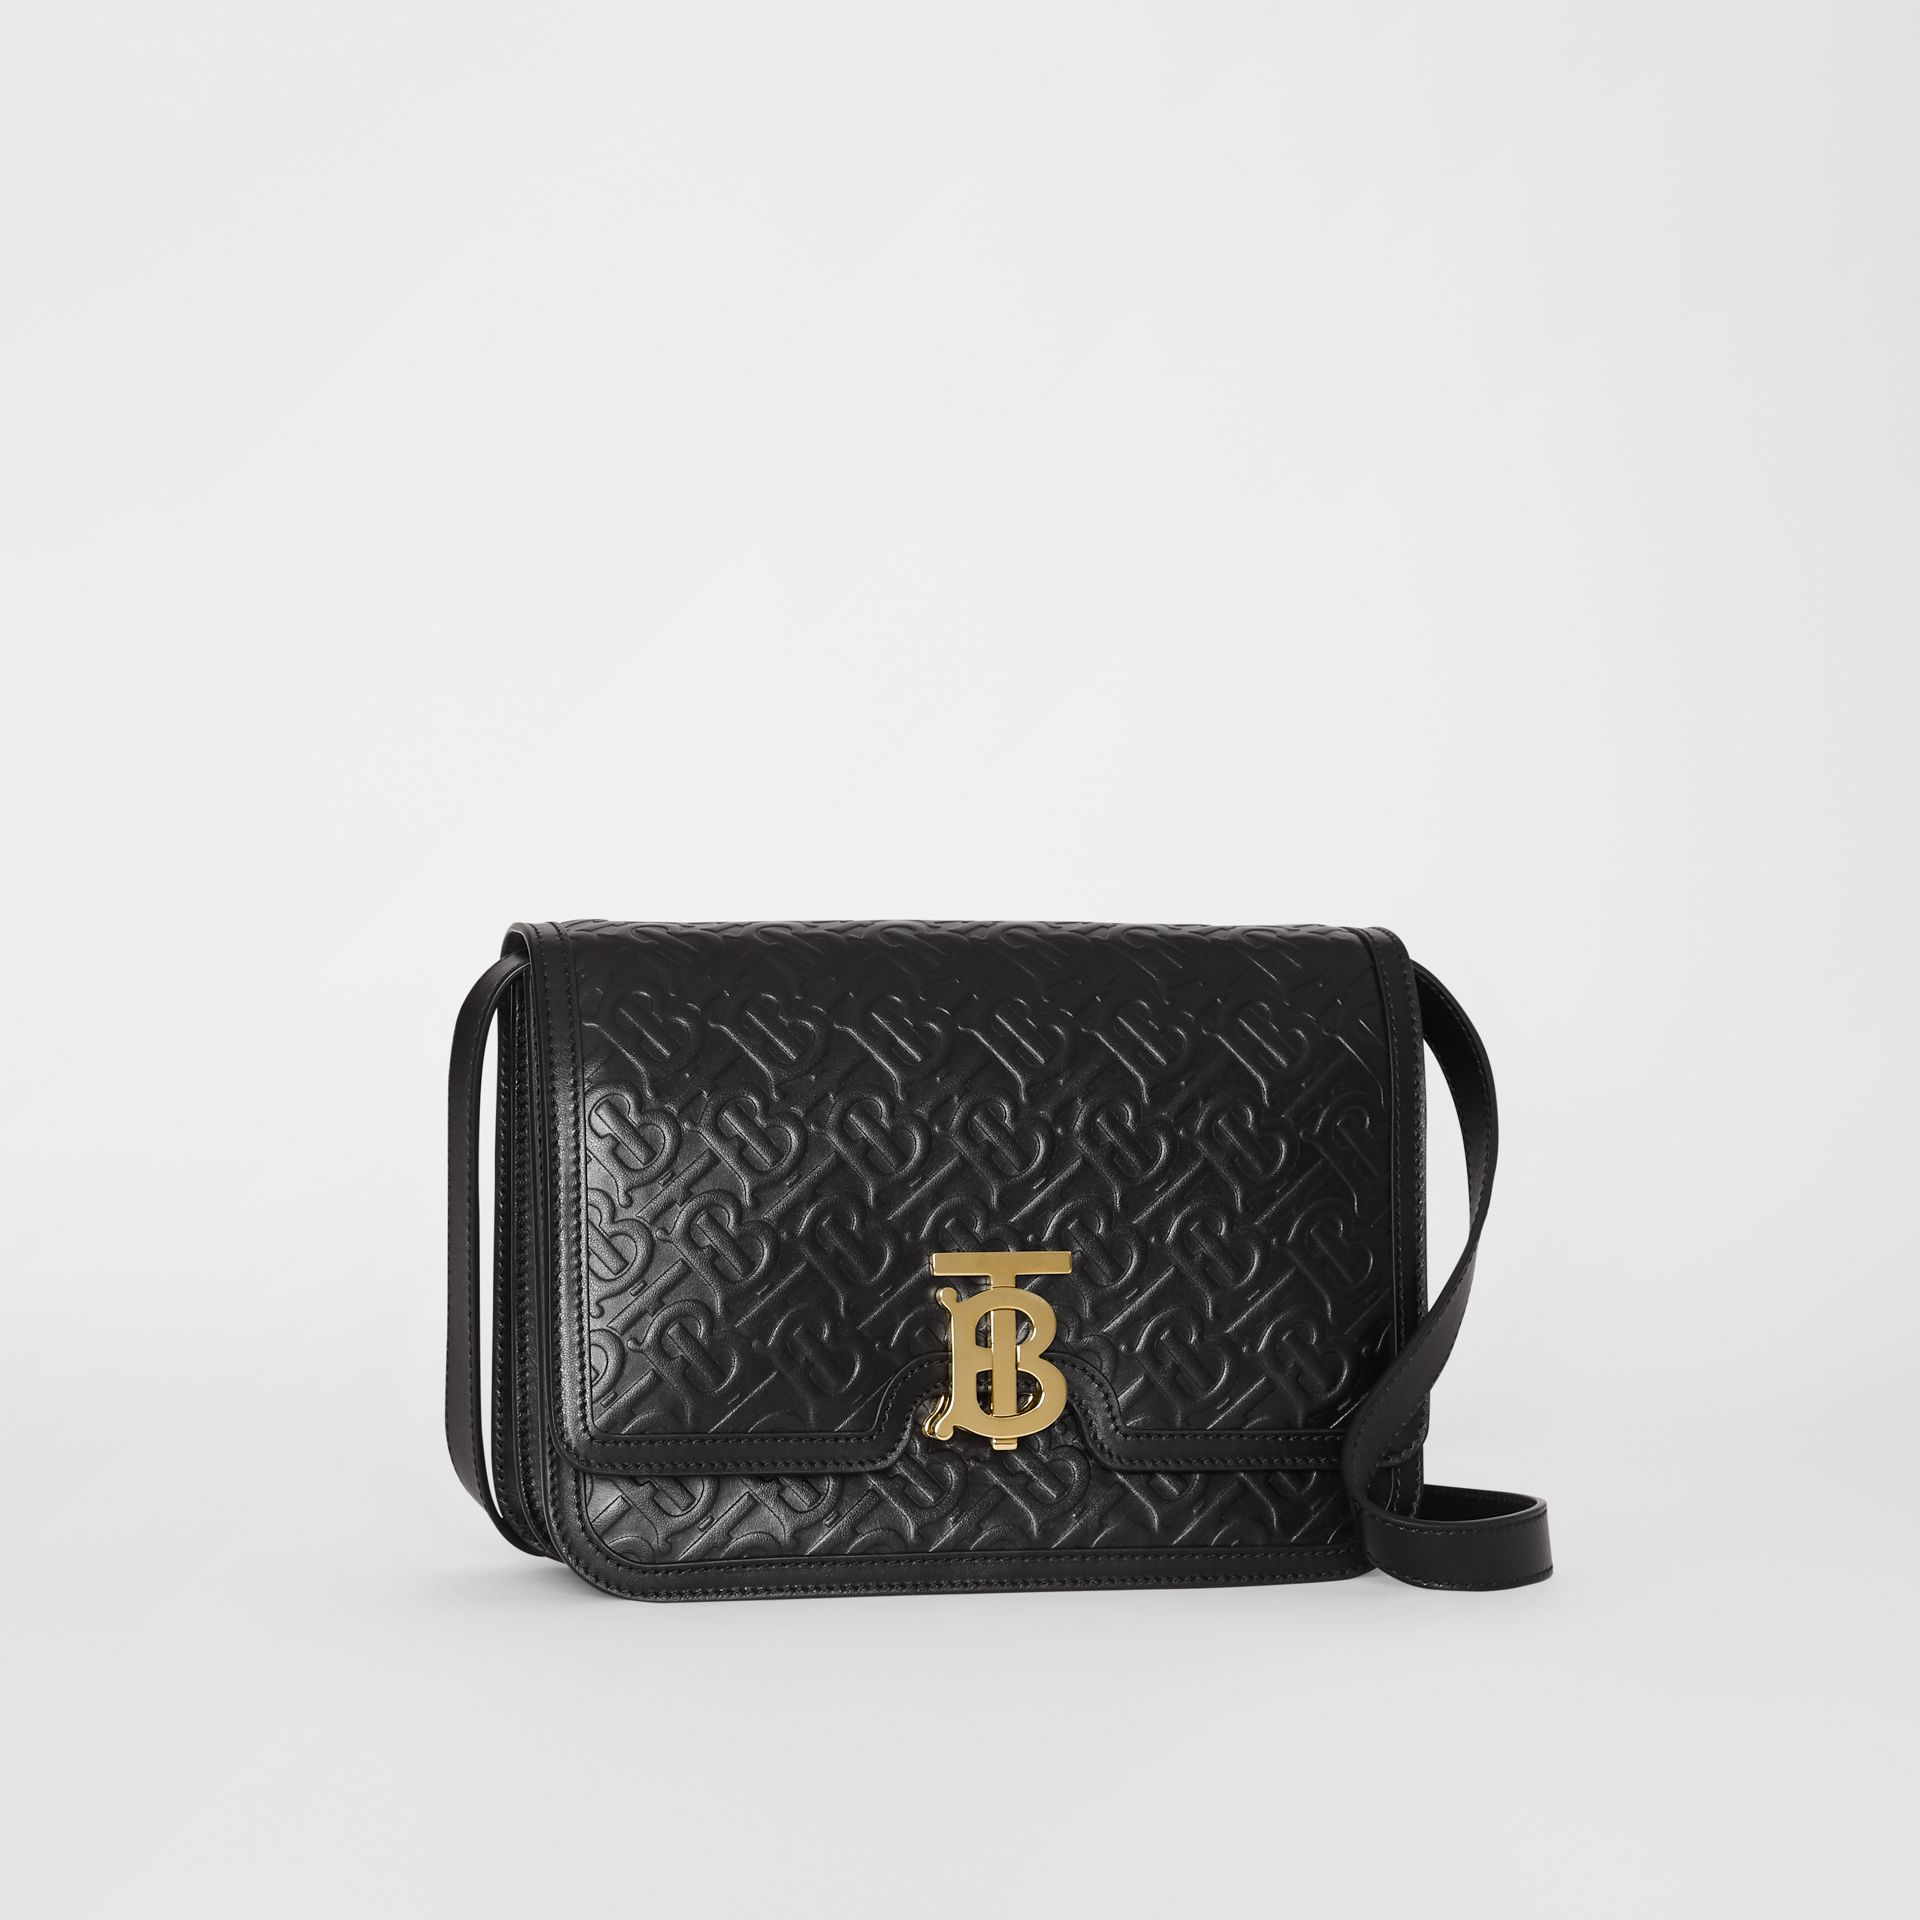 Medium Monogram Leather TB Bag in Black - Women | Burberry Canada - gallery image 6